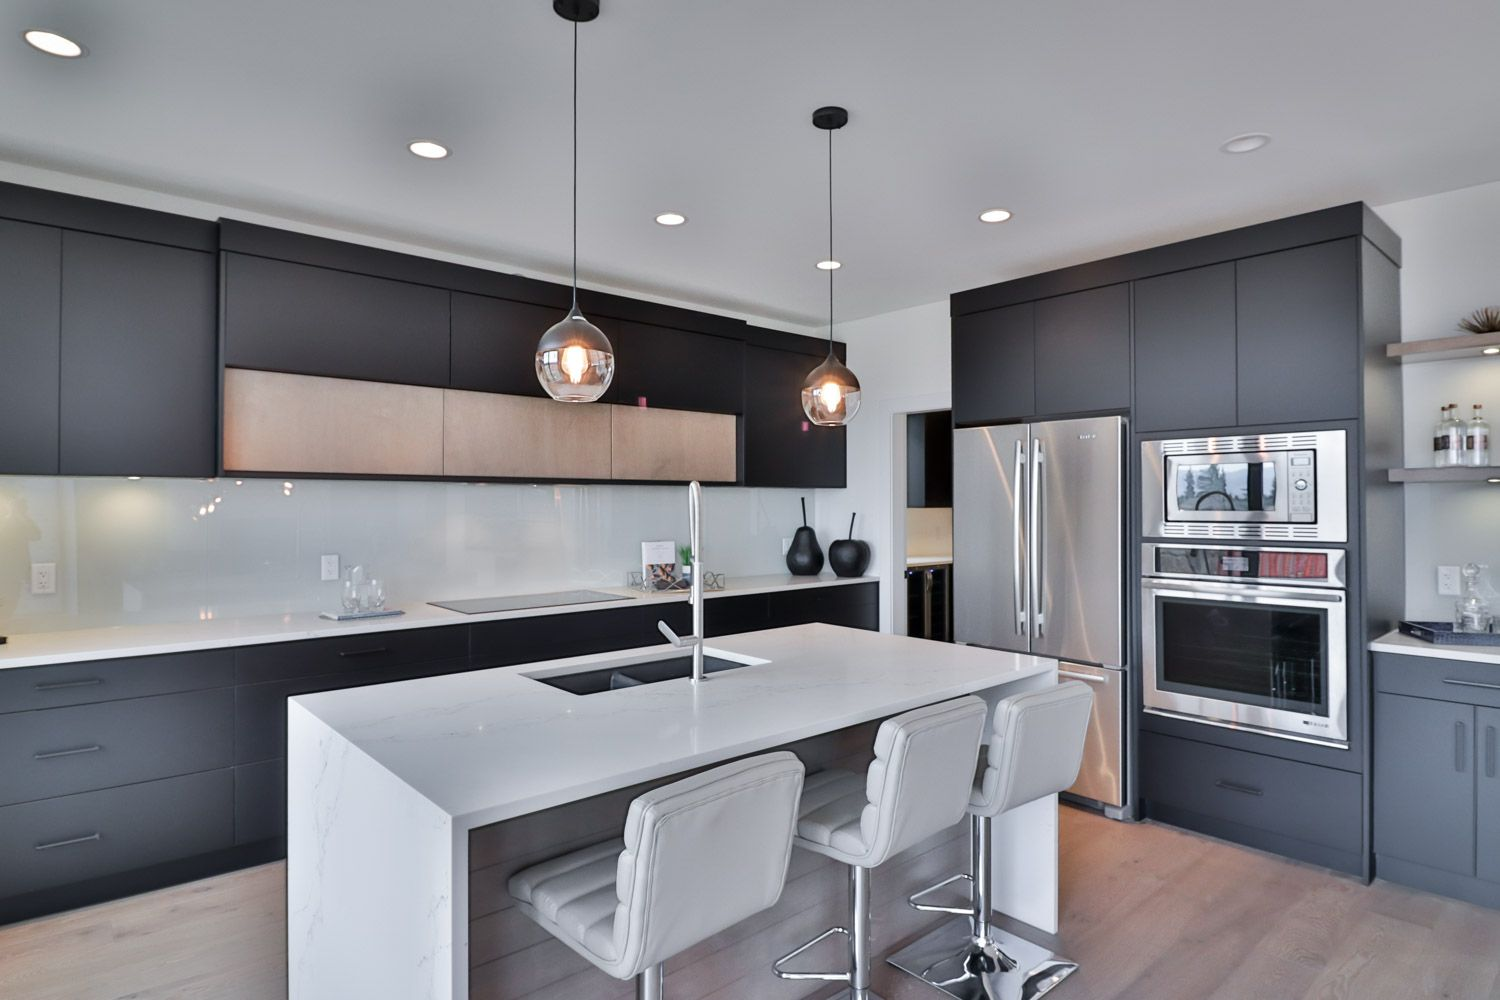 Black and glass contemporary pendants over the kitchen ...